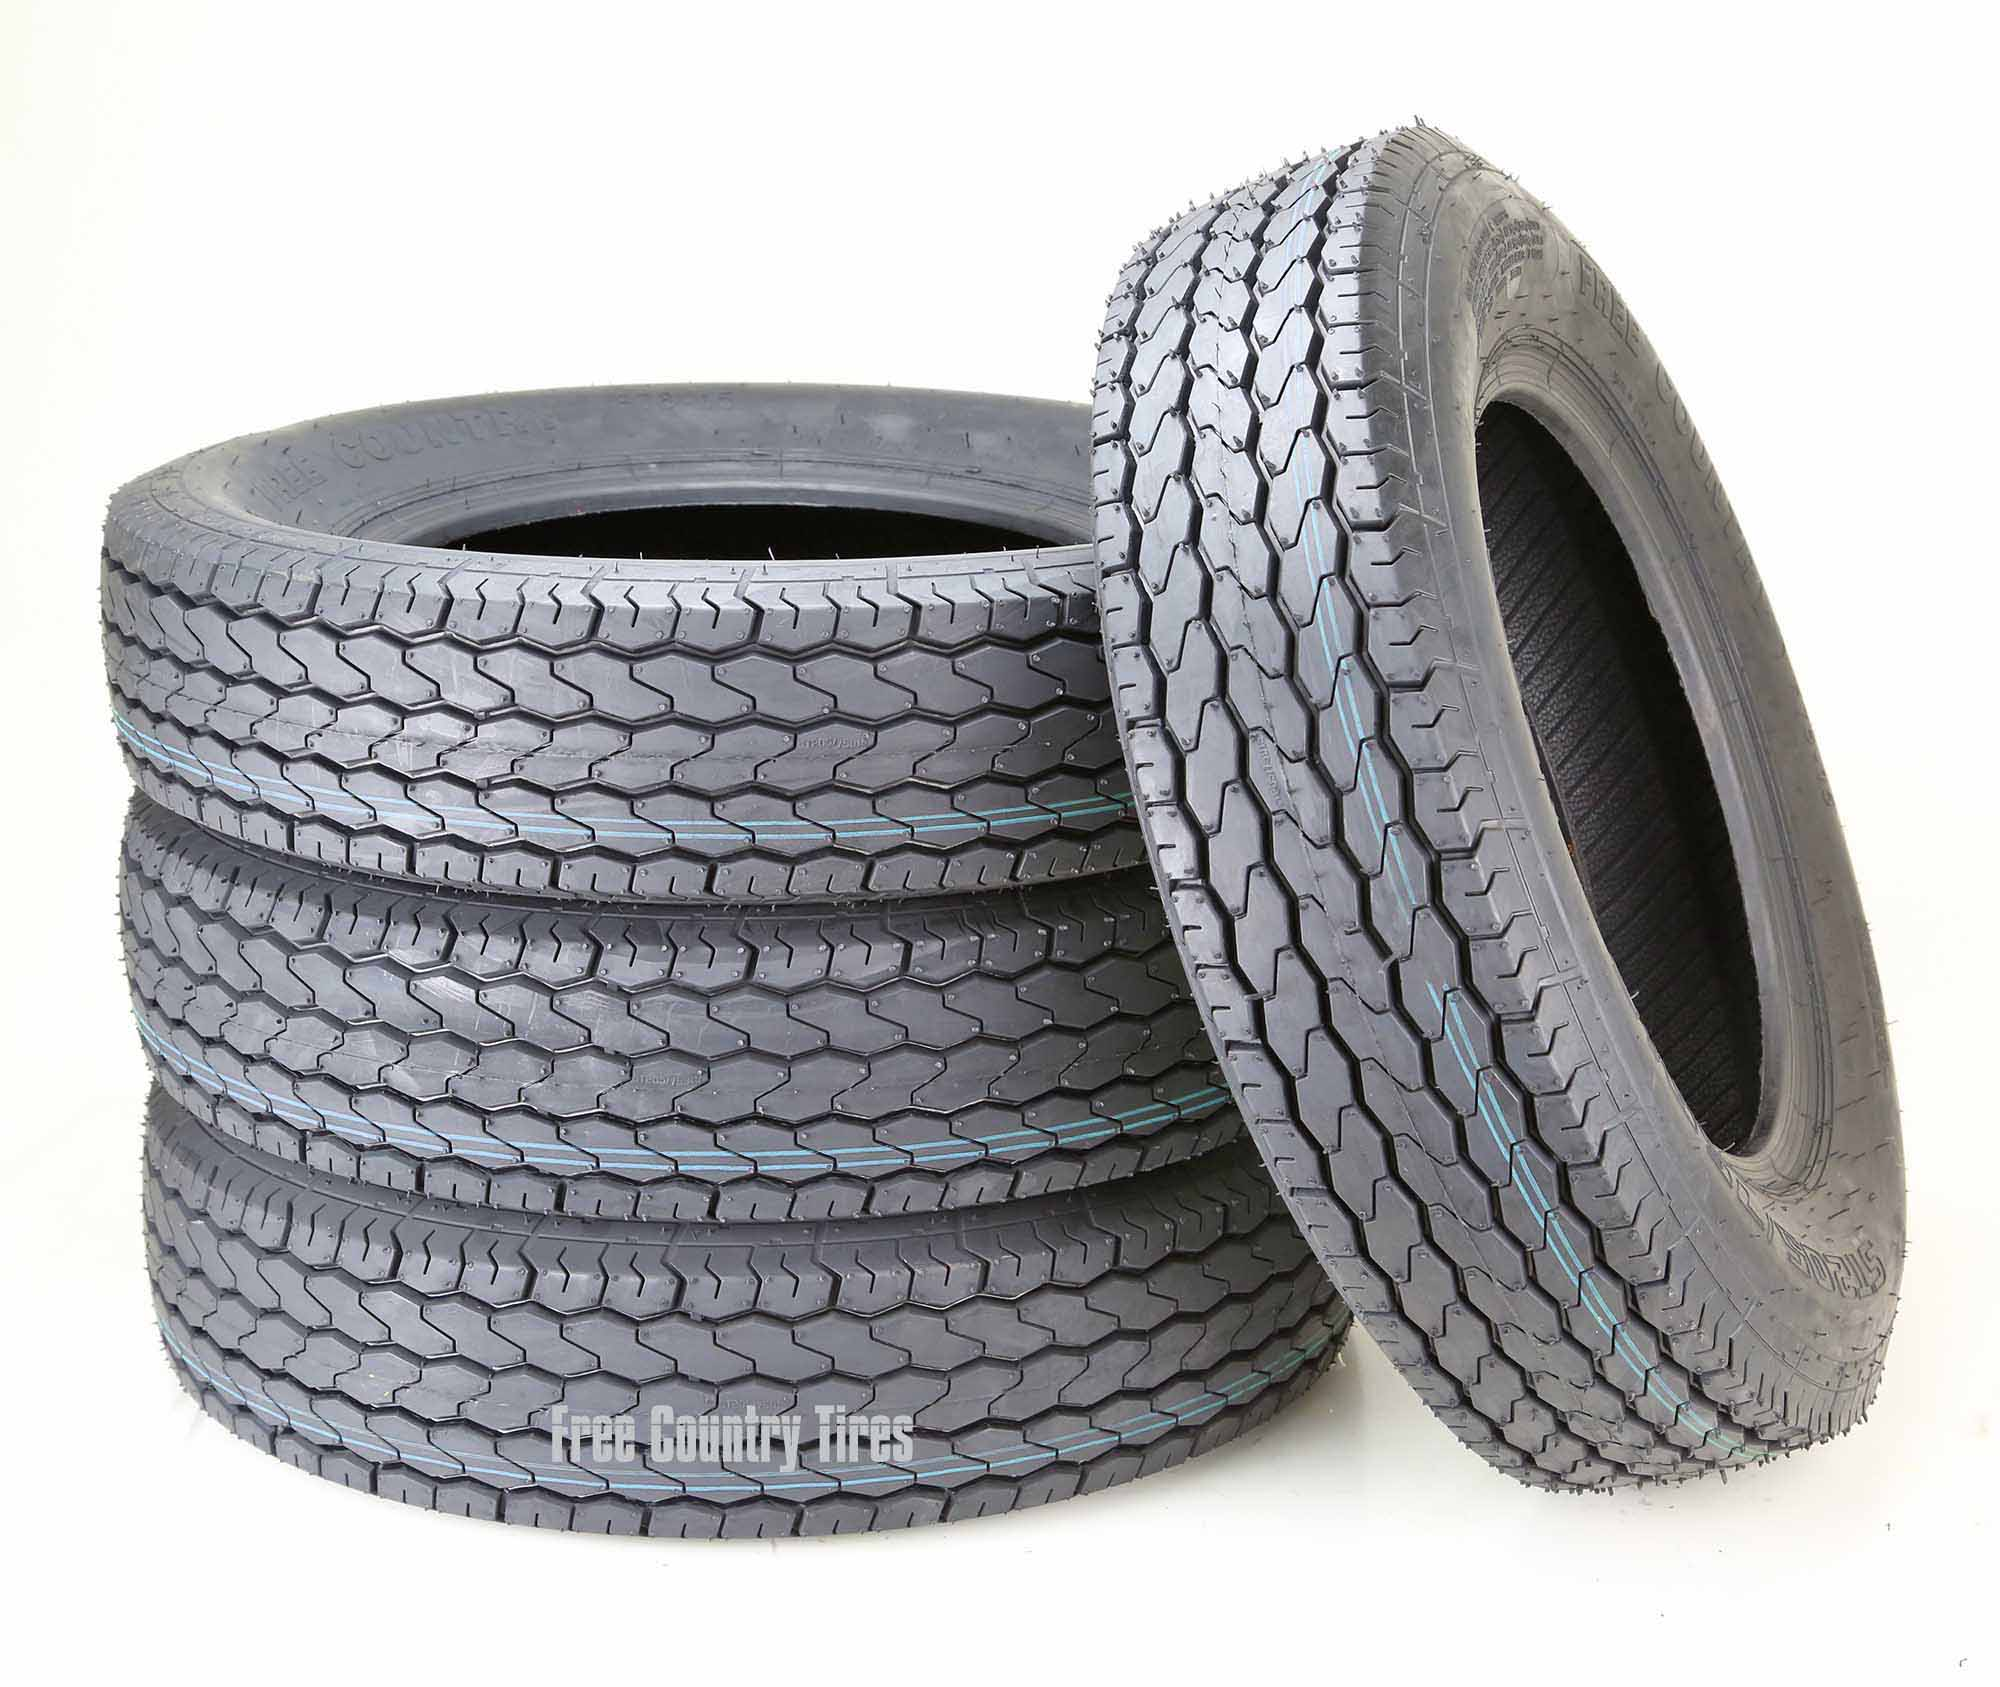 New Tires For My Car, 4 Free Country Trailer Tire St 75  Bias 6pr Lrc, New Tires For My Car